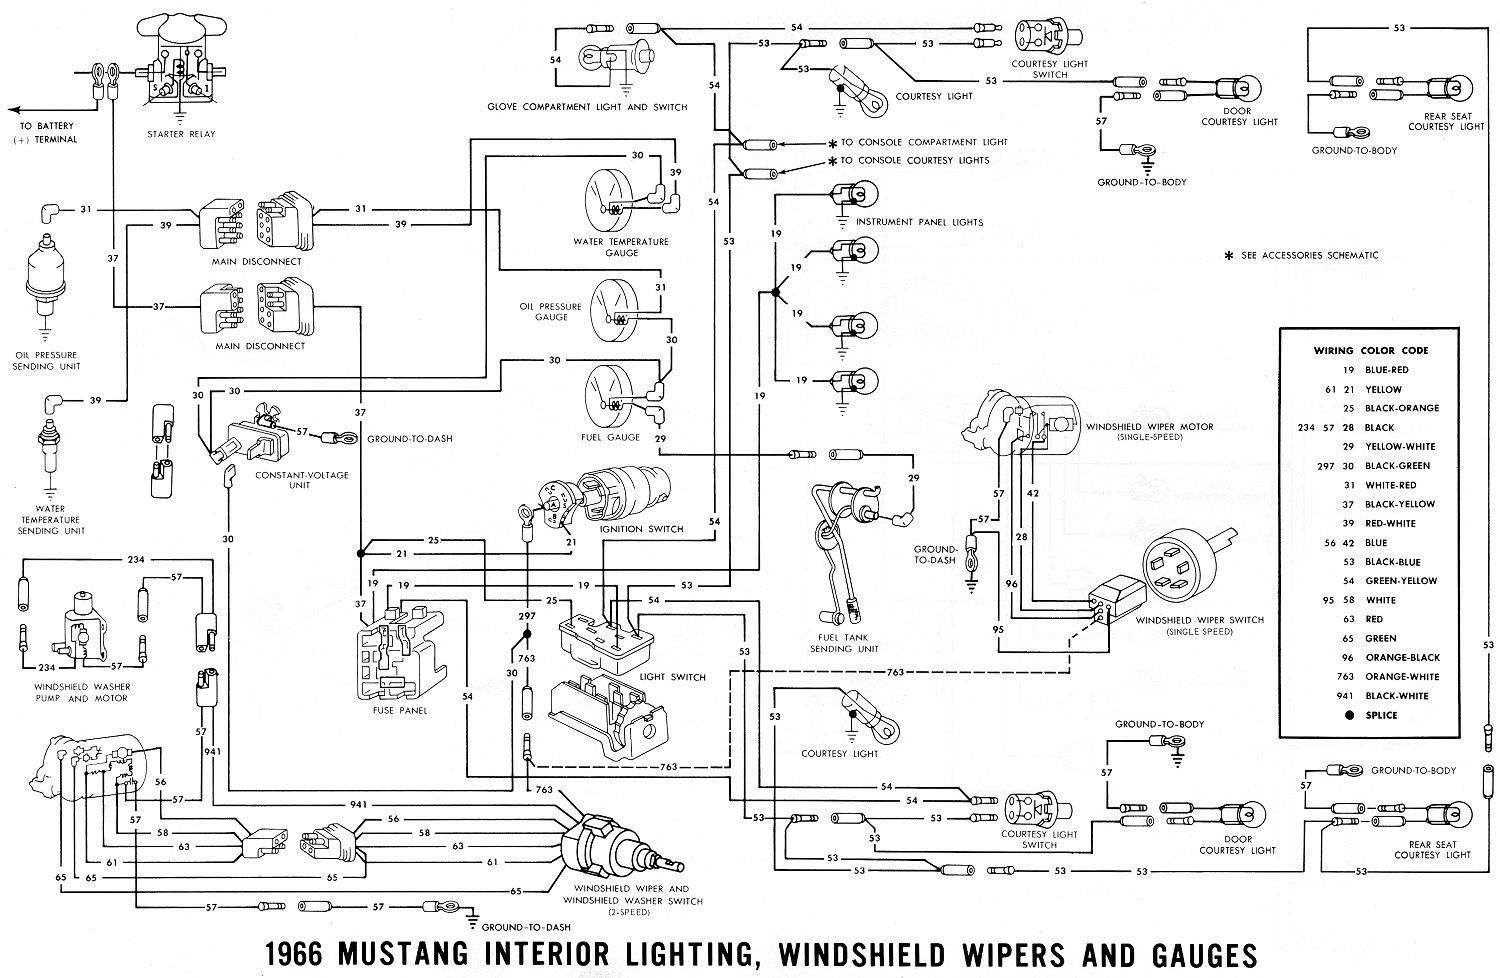 medium resolution of 1966 mustang wiring diagrams average joe restoration for 1966